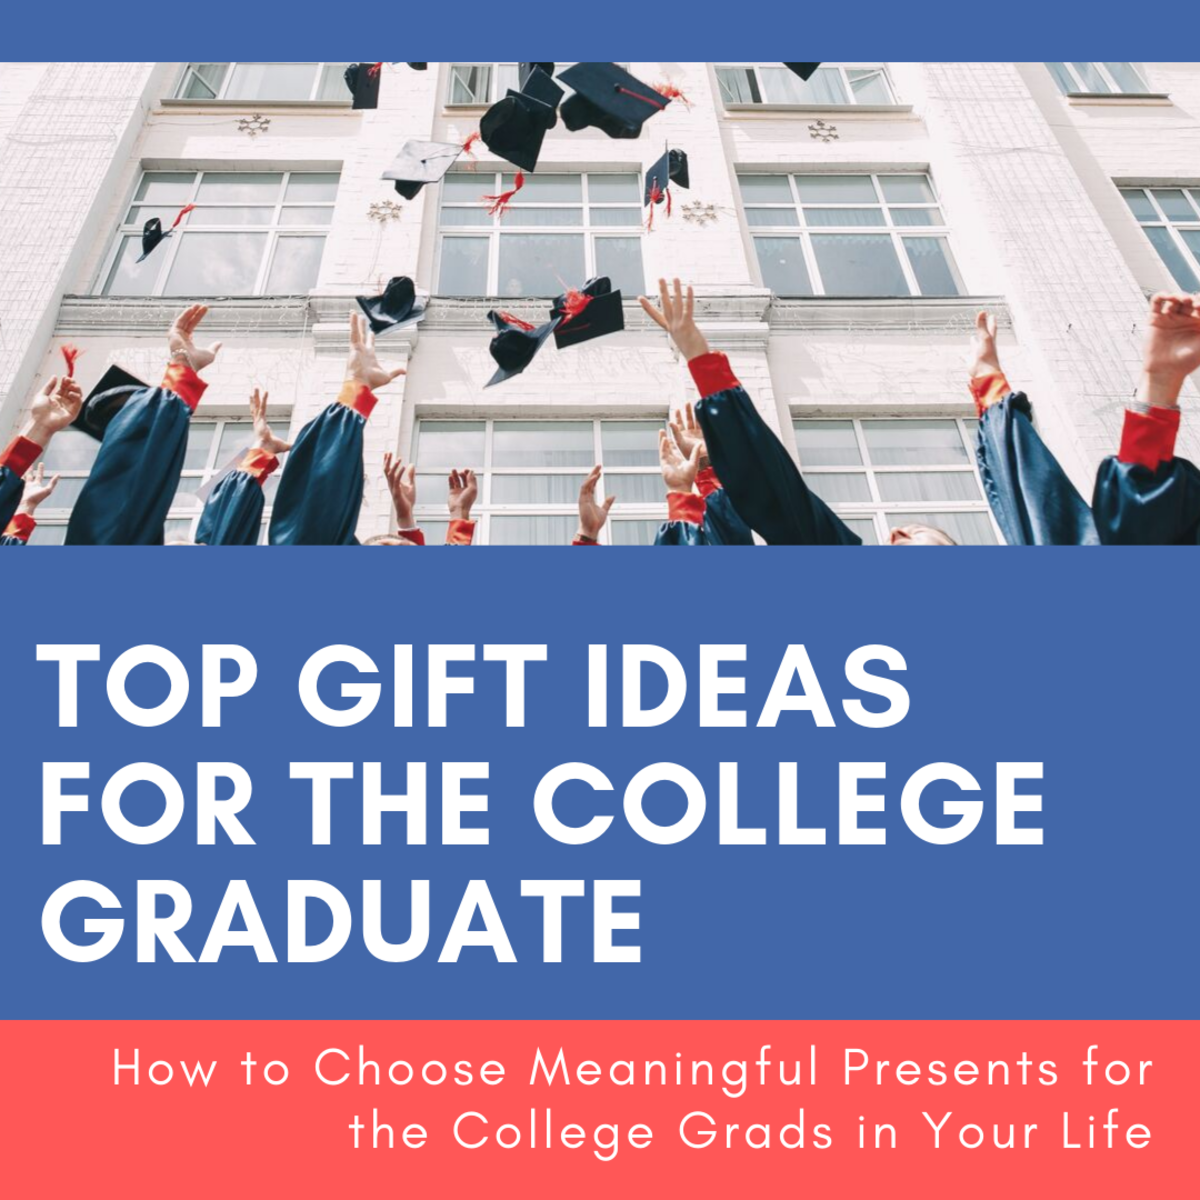 Looking for the right gift for graduation? Check out this guide.